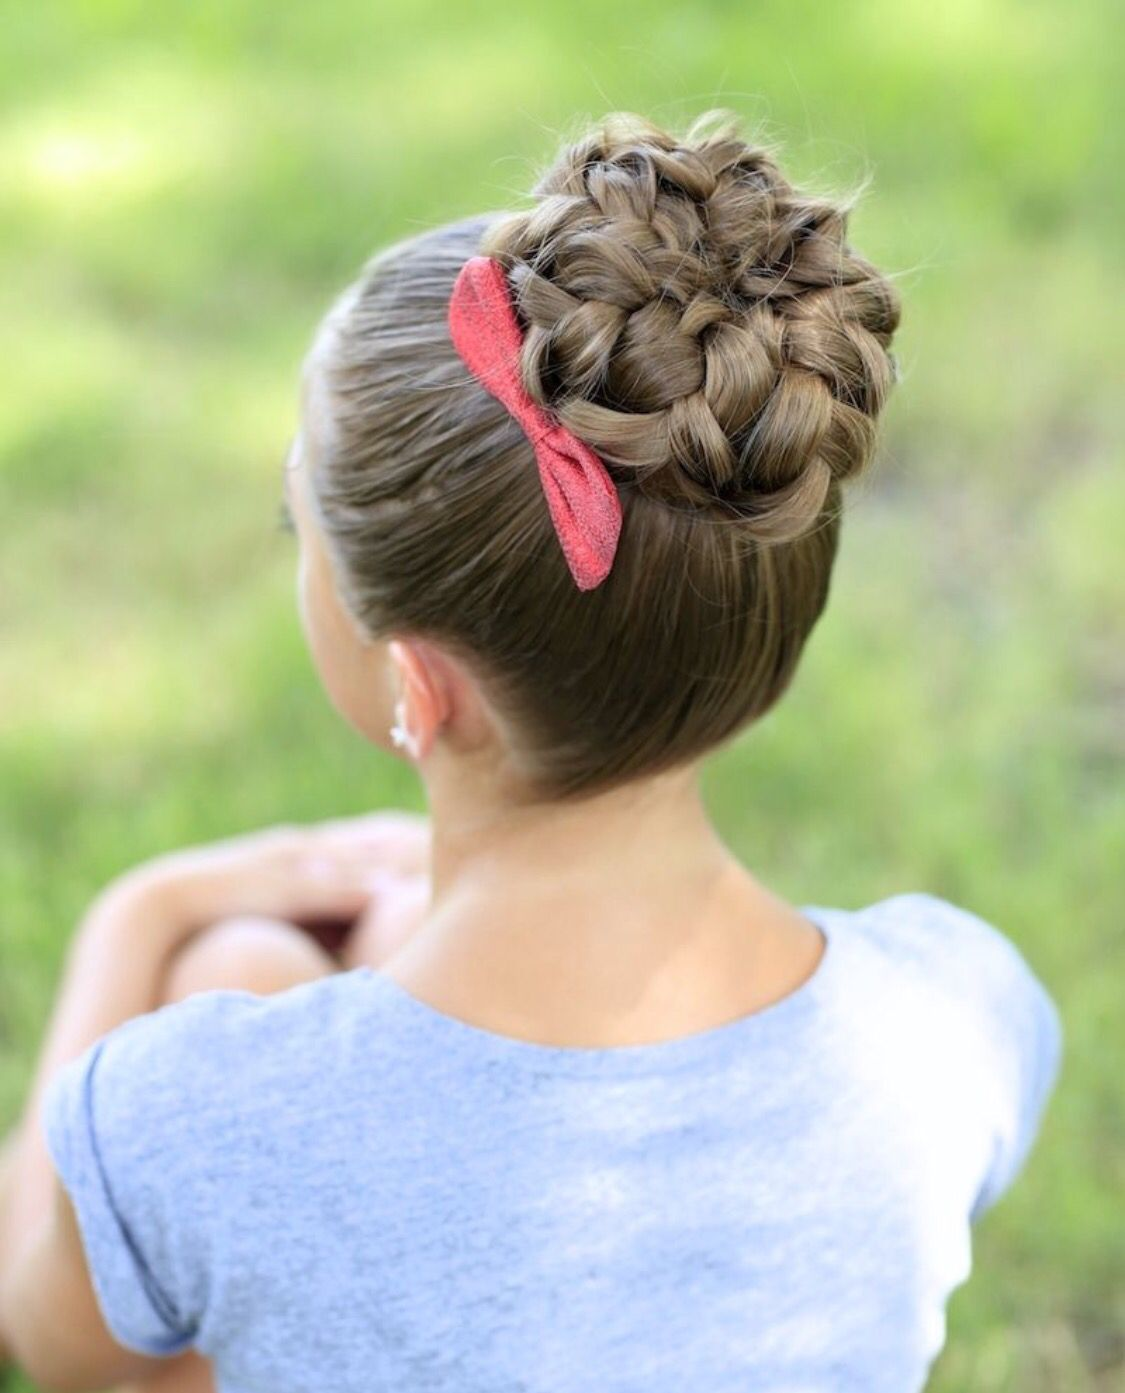 cute bun for dance recitals or just to get your hair out of